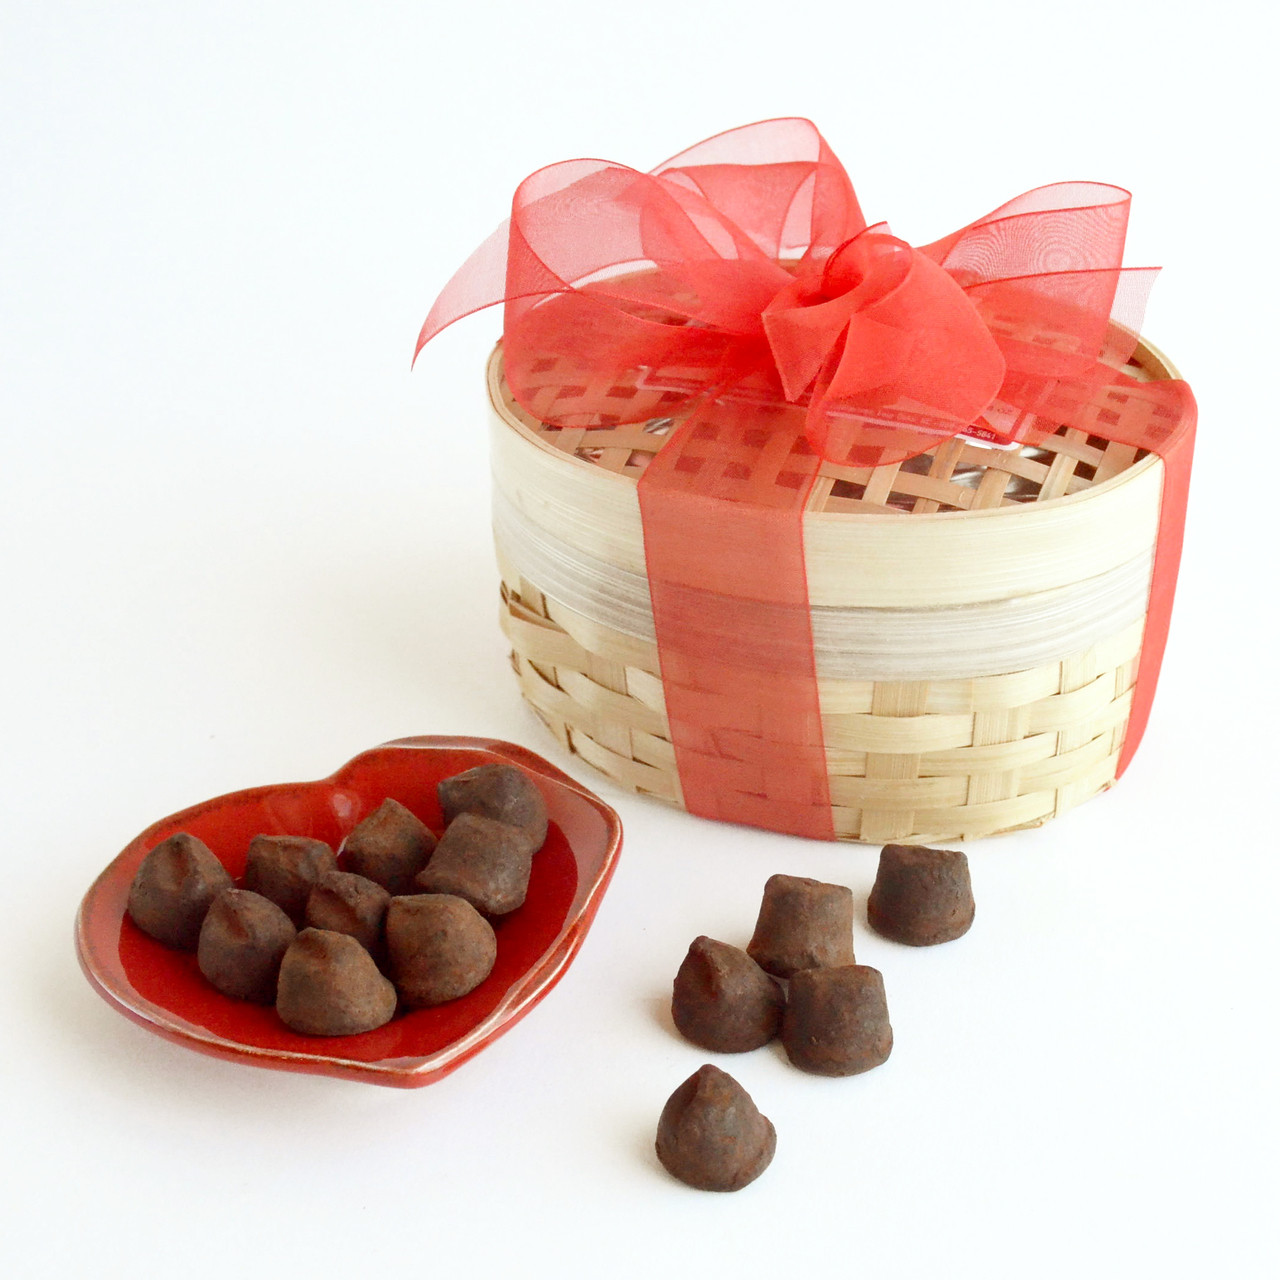 Home; Chocolate Truffles in Basket. Image 1